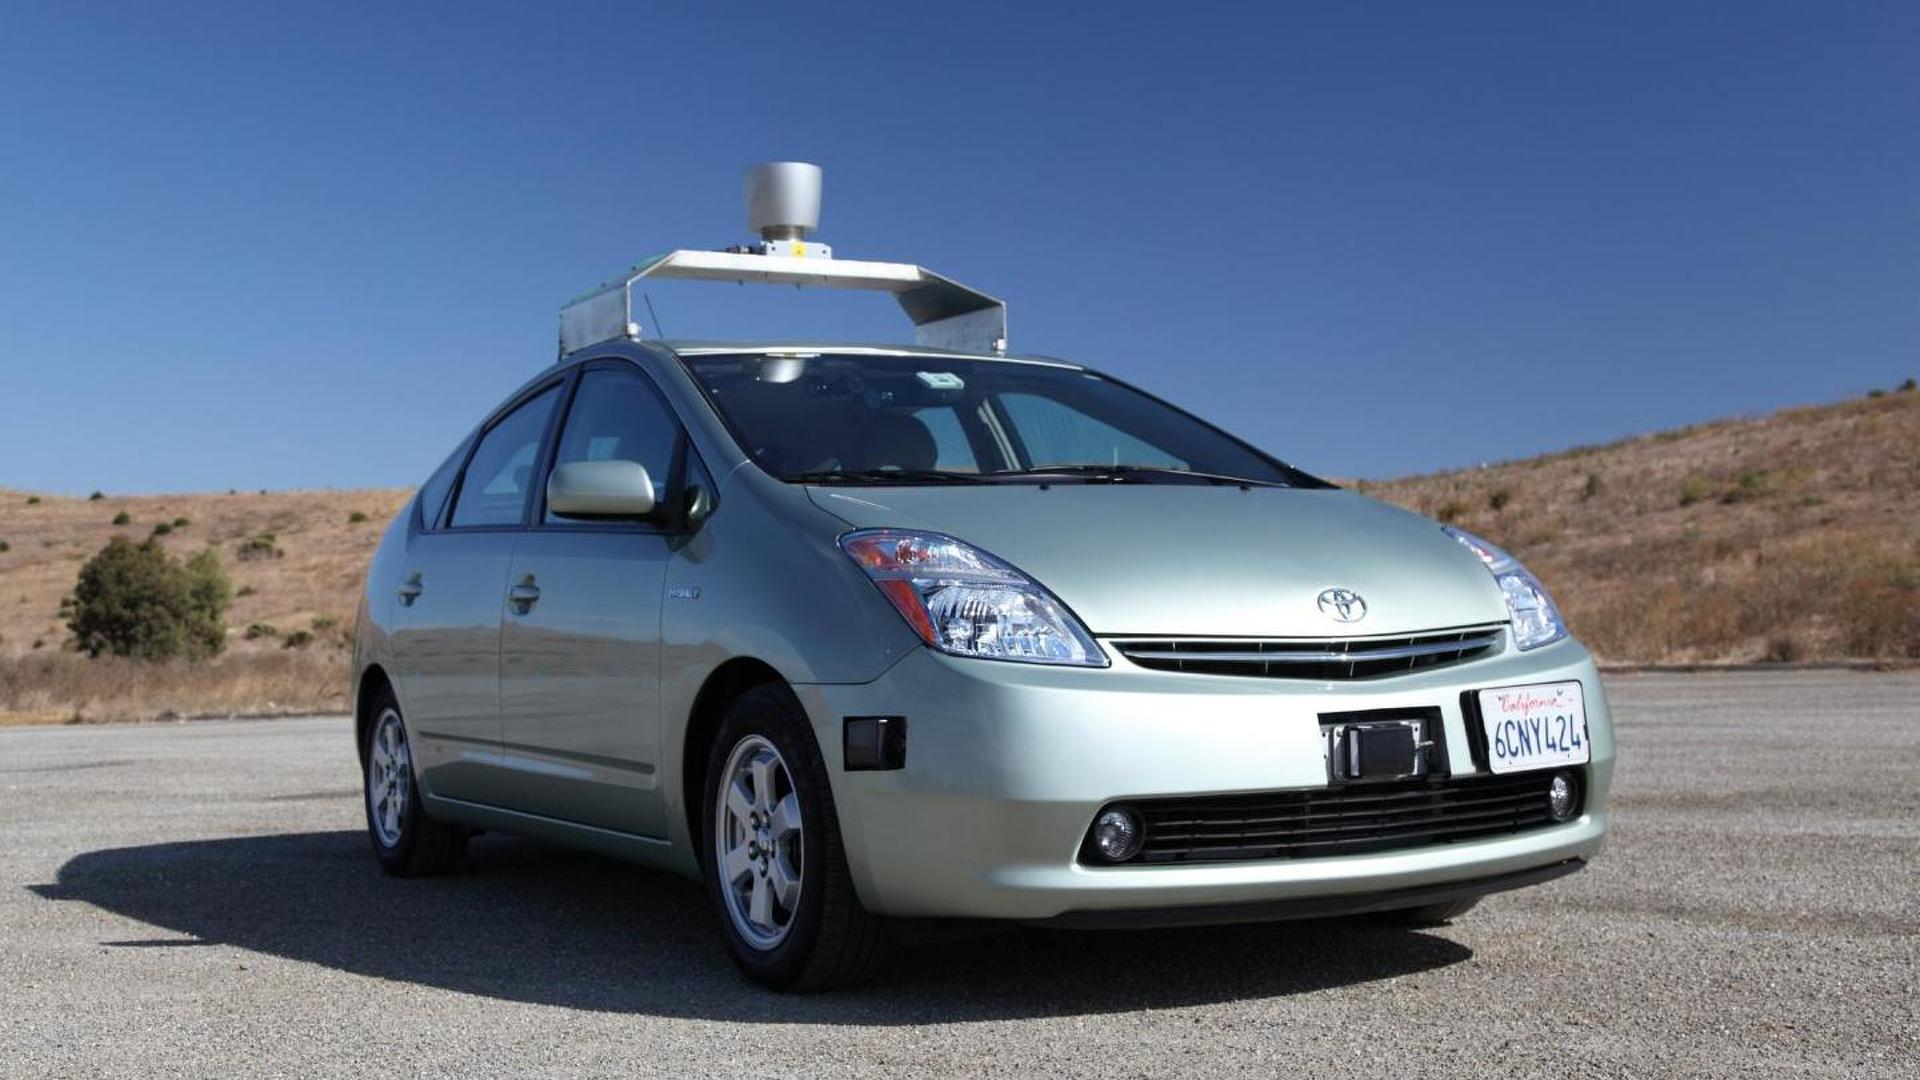 Google's autonomous car gets a driving license